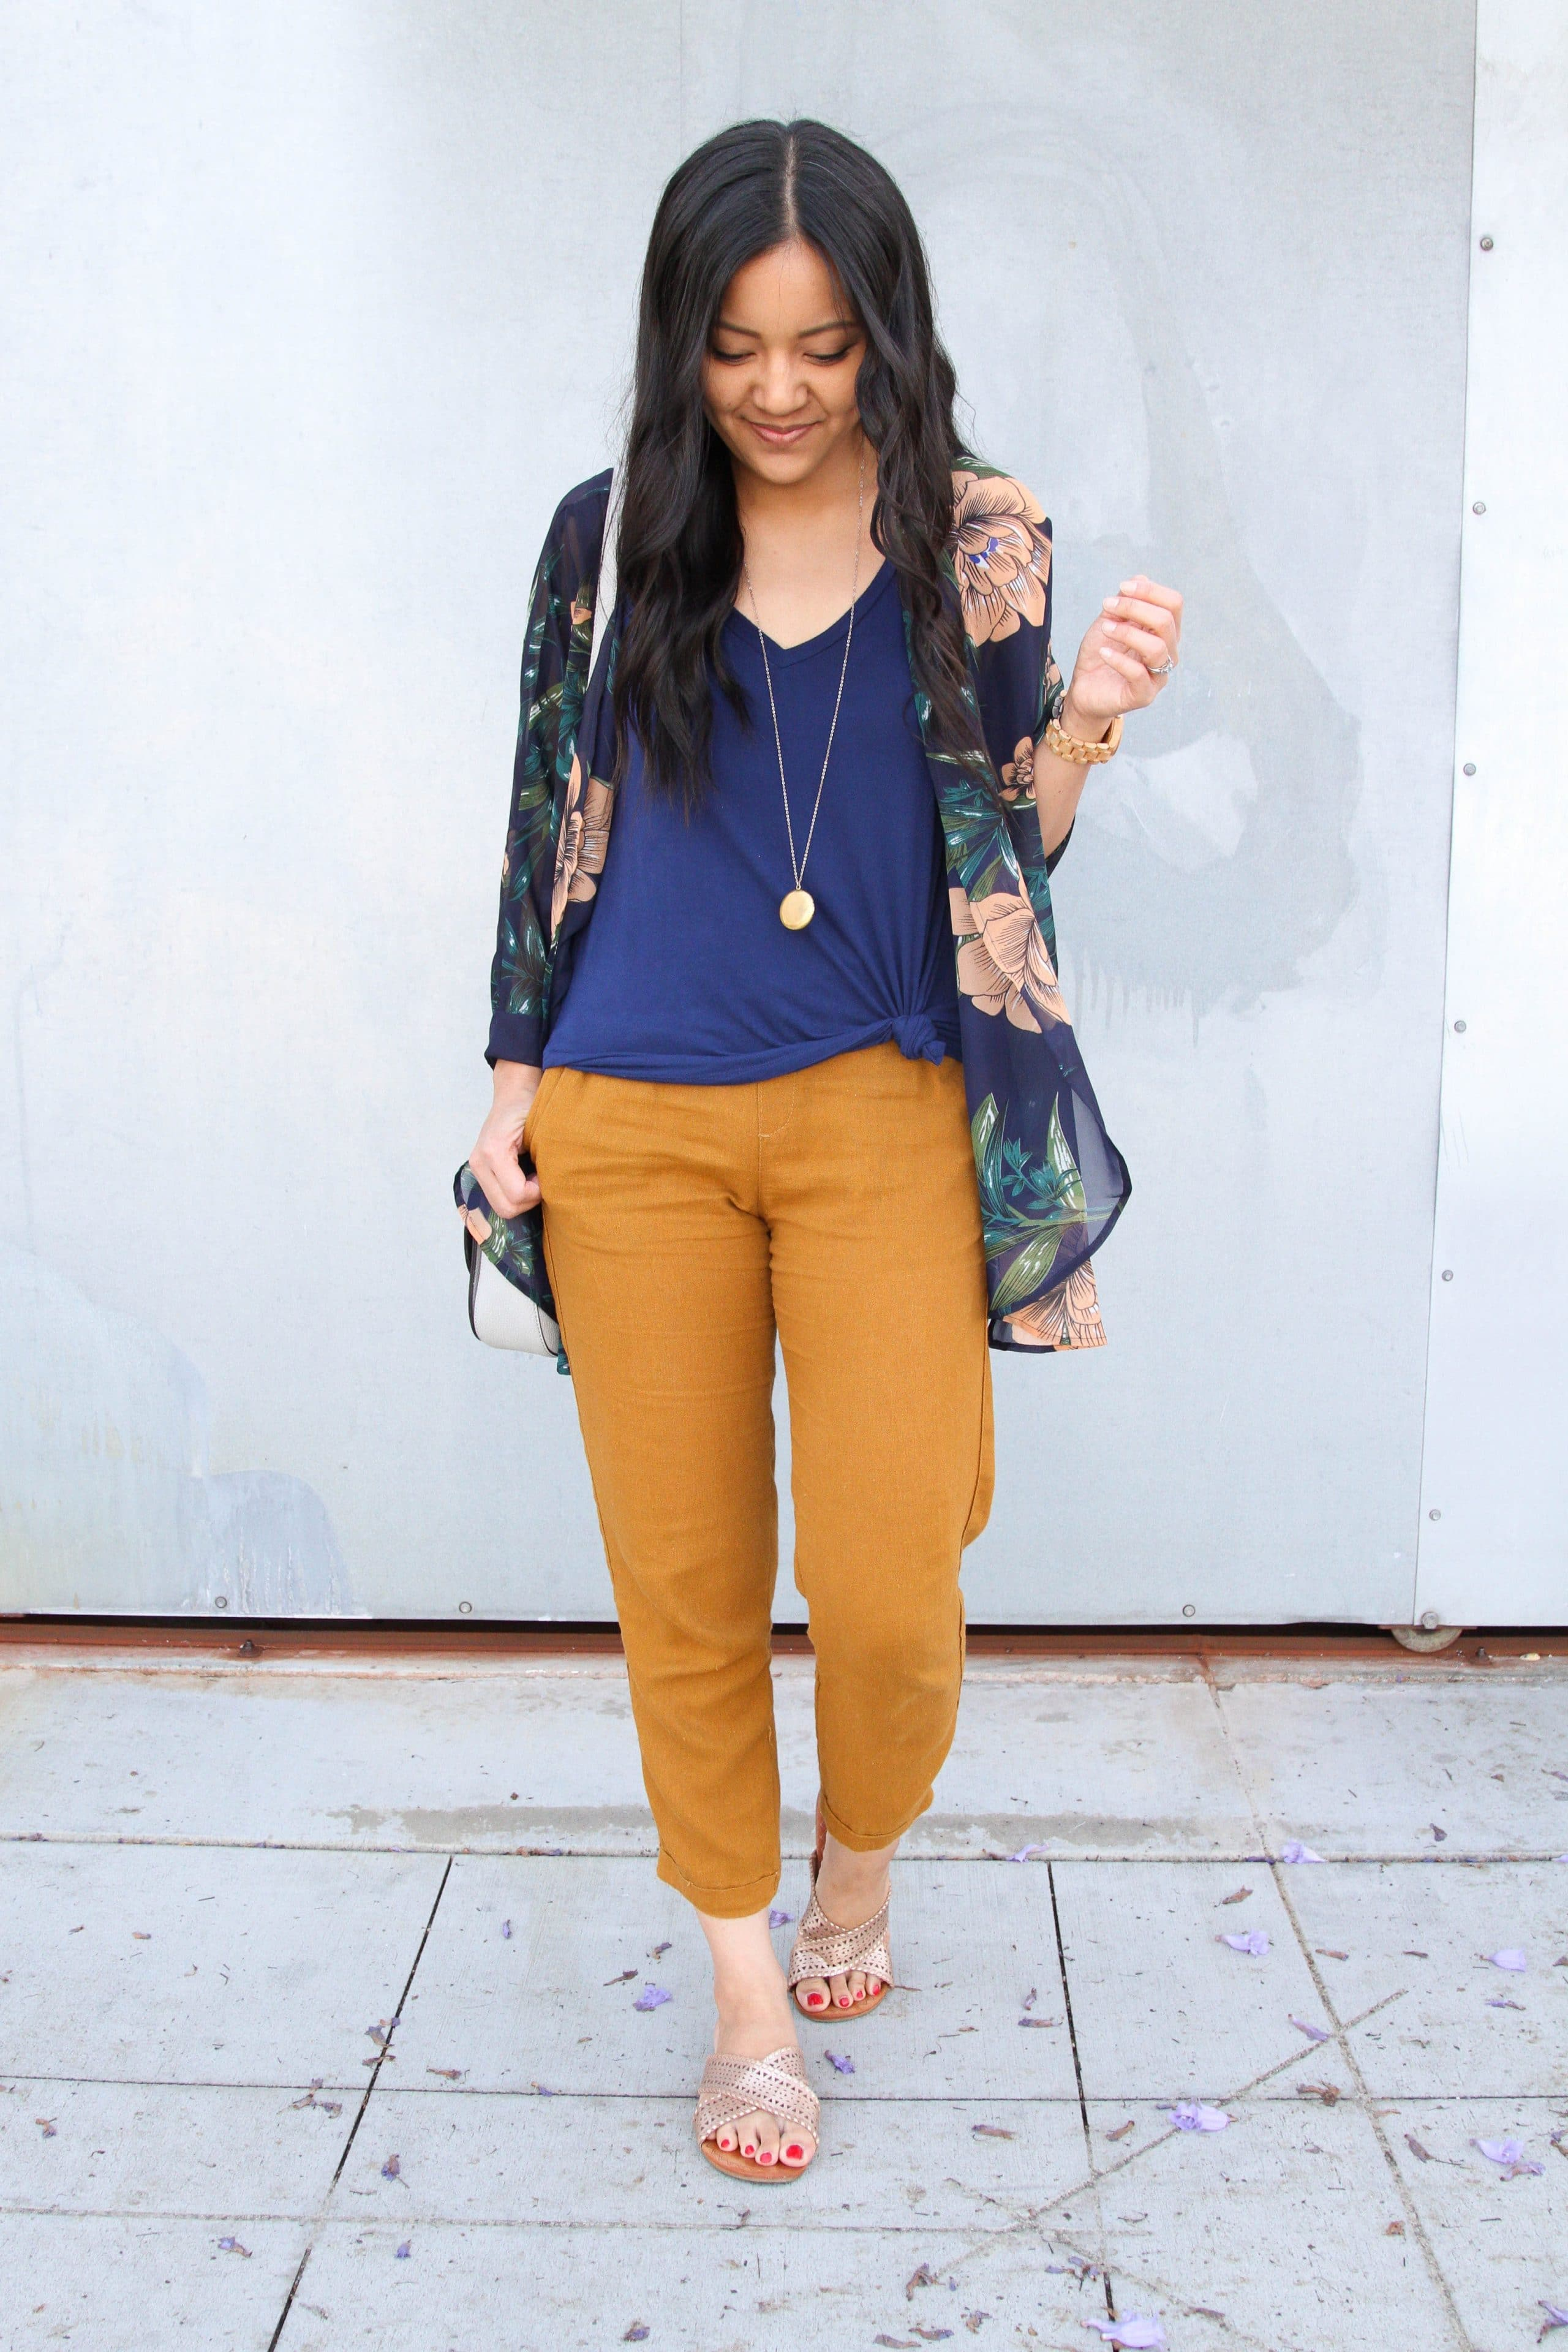 navy top + mustard linen pants + navy floral wrap + metallic sandals + pendant necklace